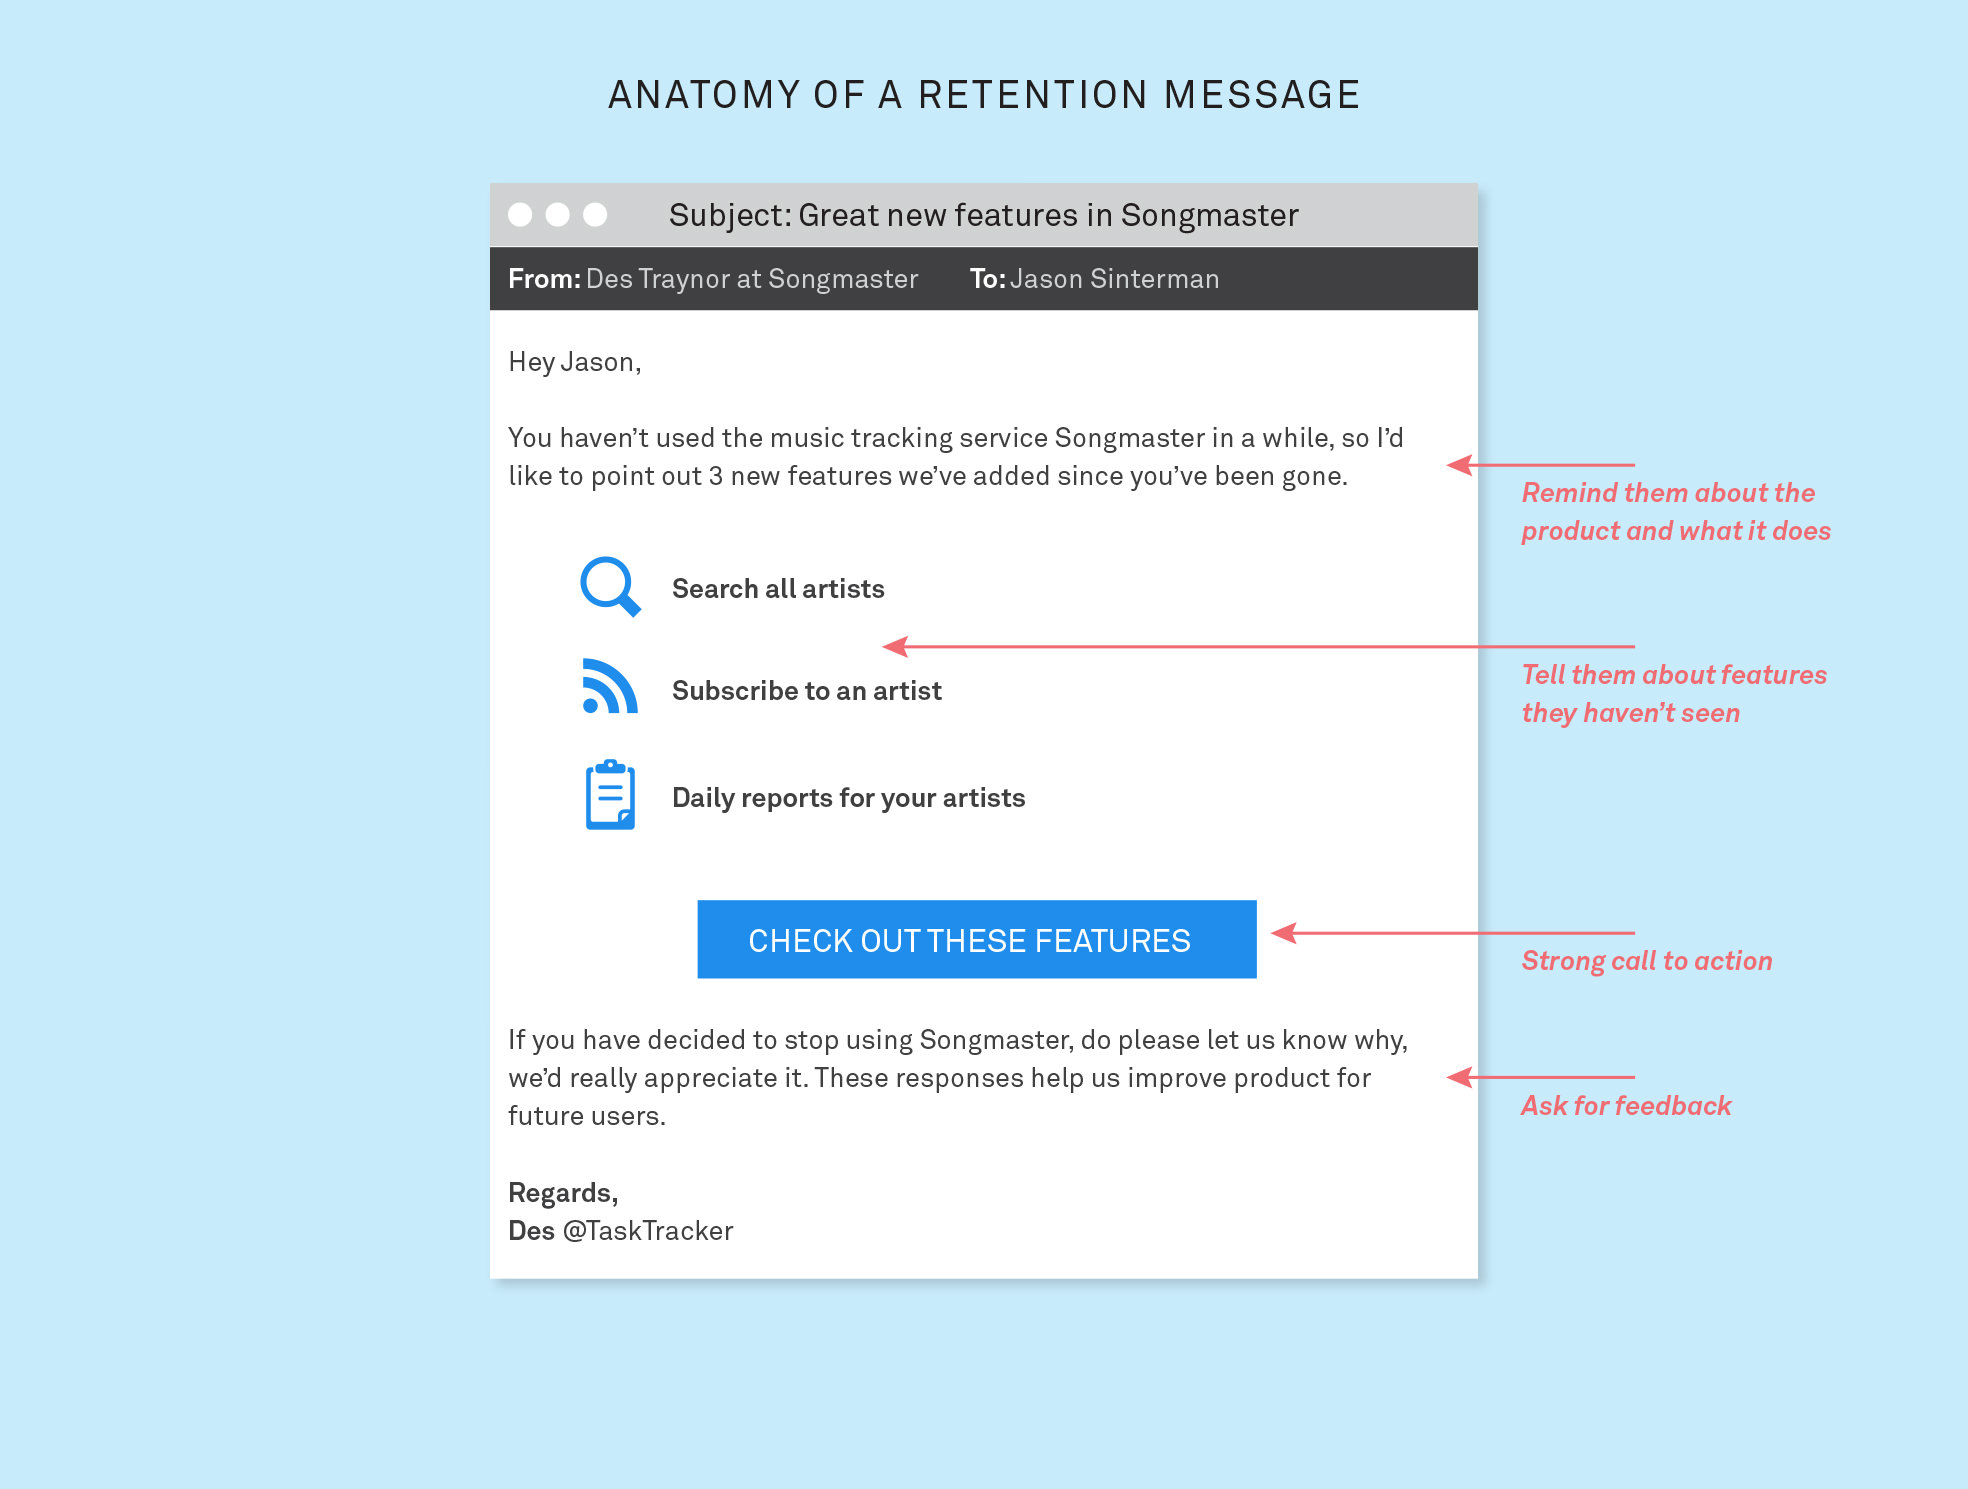 retention message breakdown